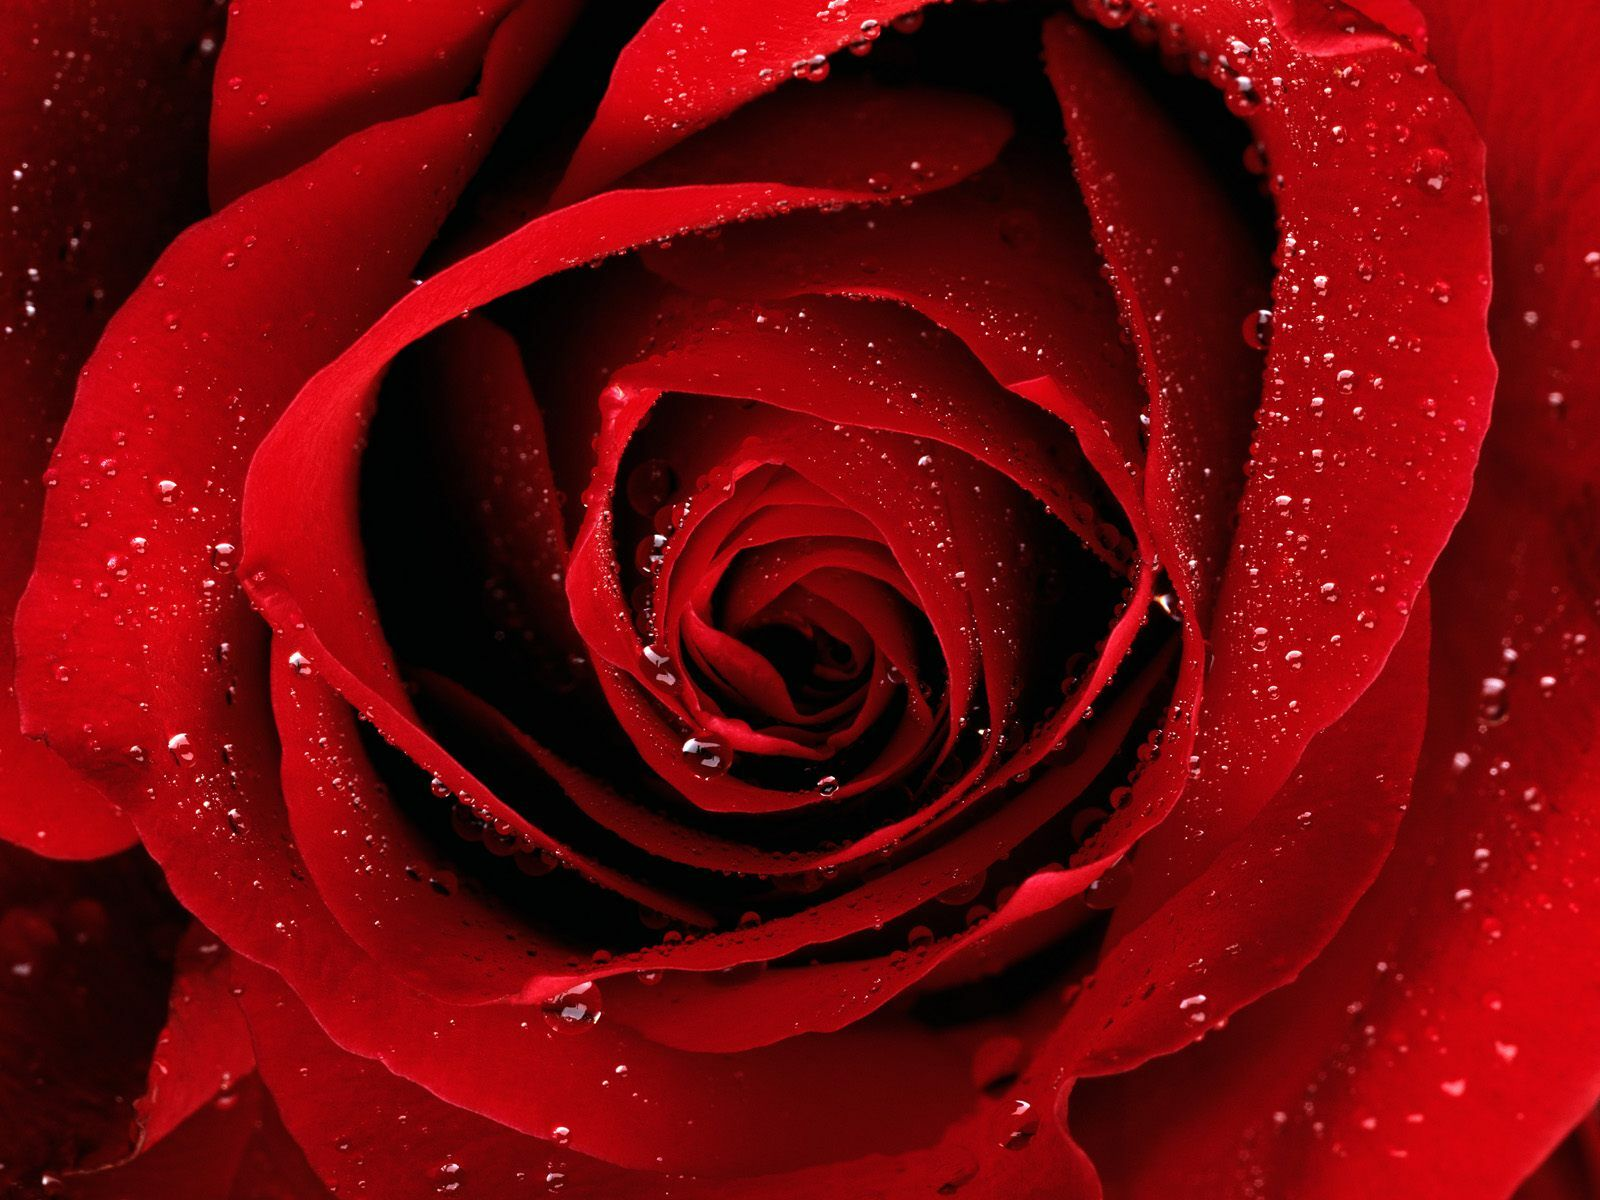 A Red Rose For You 237.04 Kb